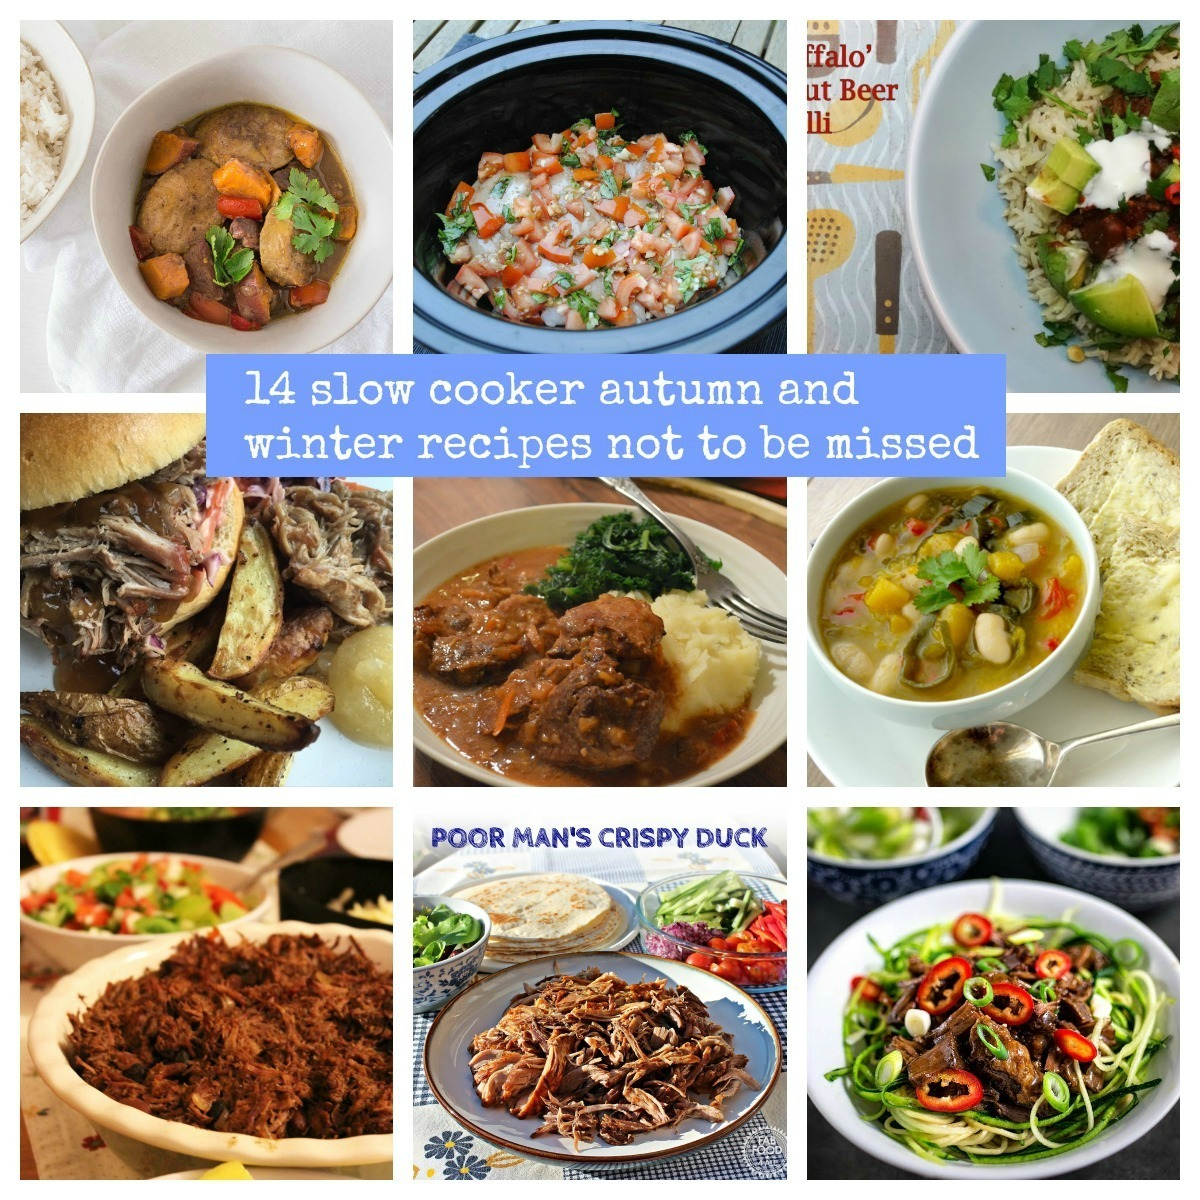 14 Slow Cooker Autumn/Winter Recipes Not To Be Missed